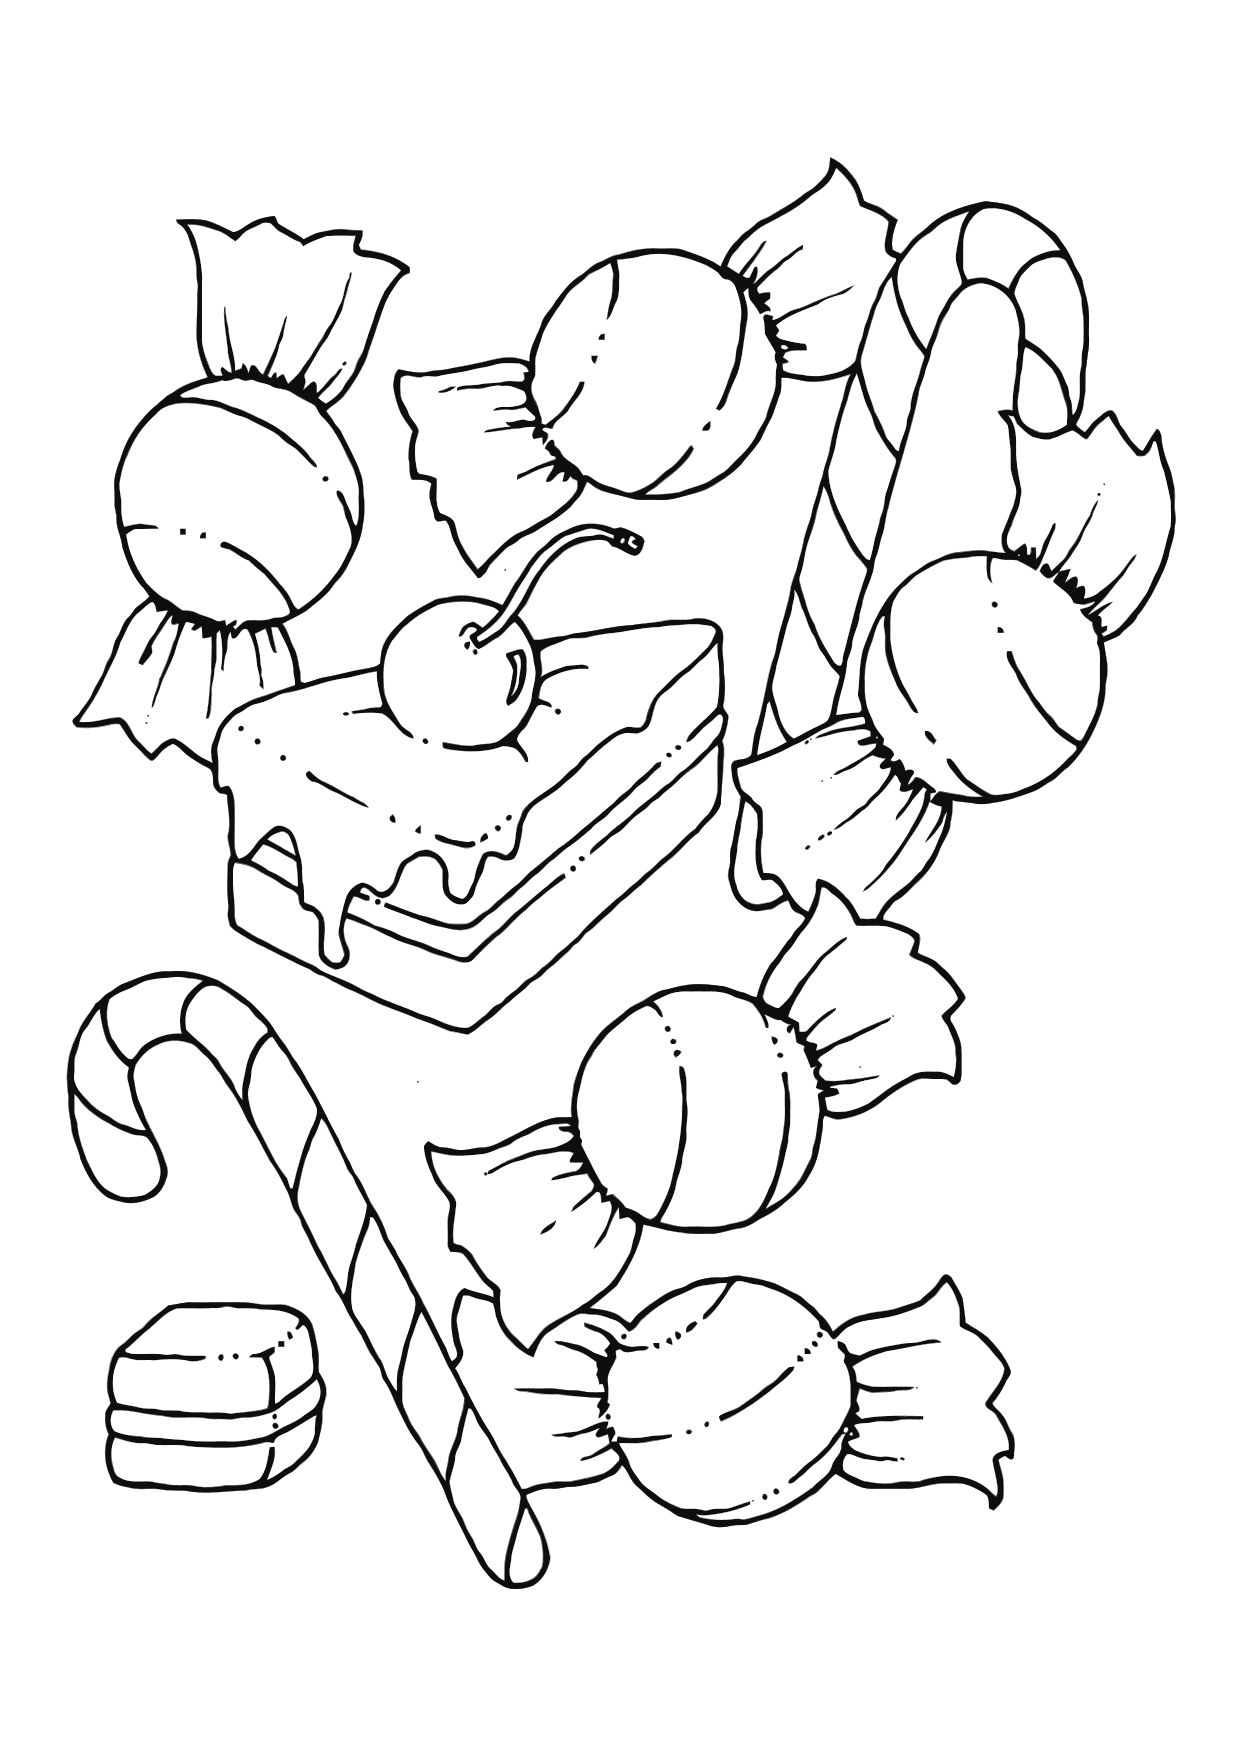 sweets coloring pages Free Printable Candy Coloring Pages For Kids sweets coloring pages